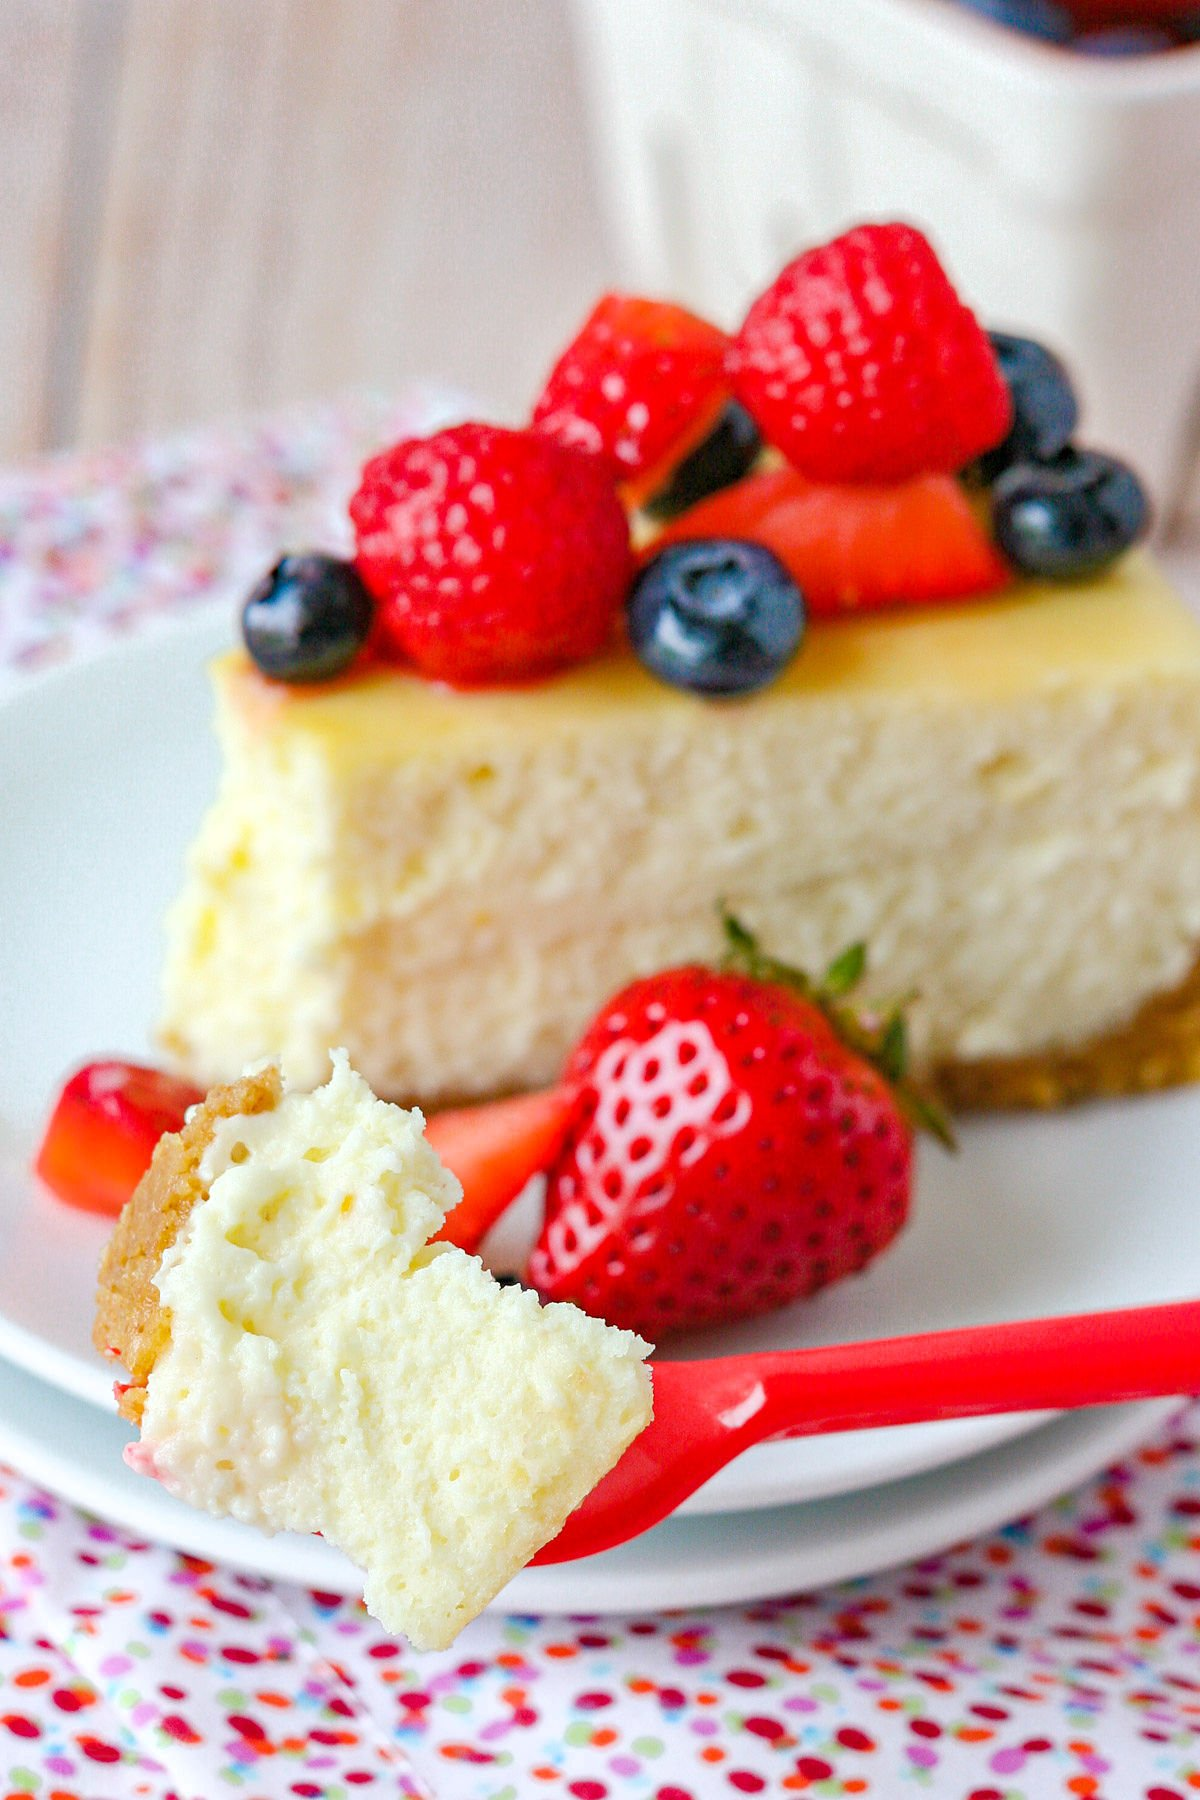 cheesecake slice on plate with one bite on fork.